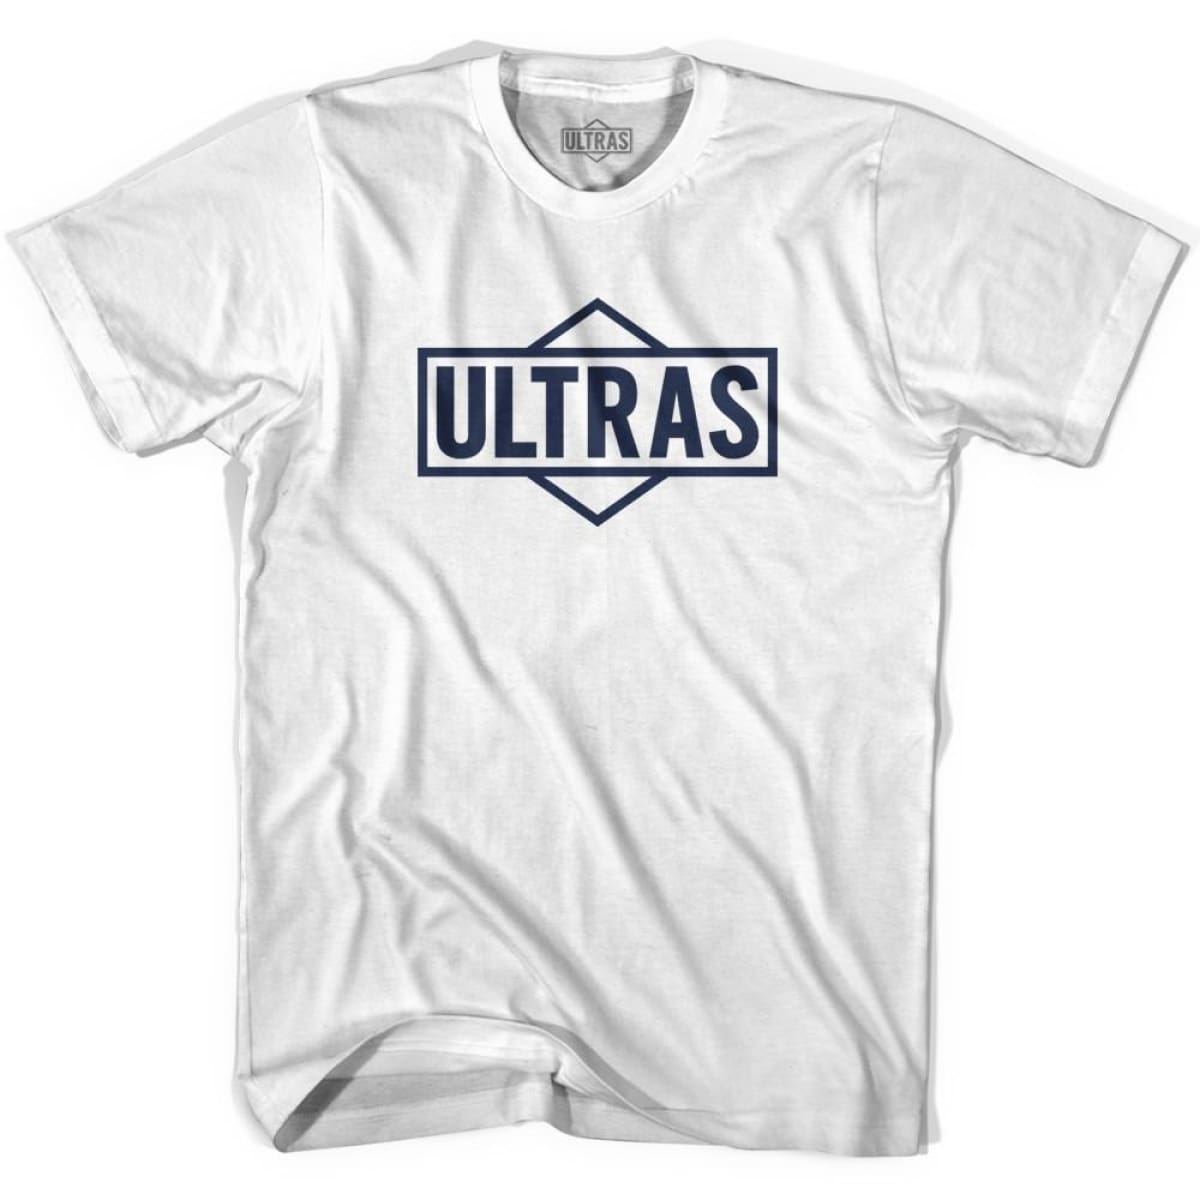 Ultras Diamond Logo Soccer T-shirt - White / Youth X-Small - Ultras Club Soccer T-shirt